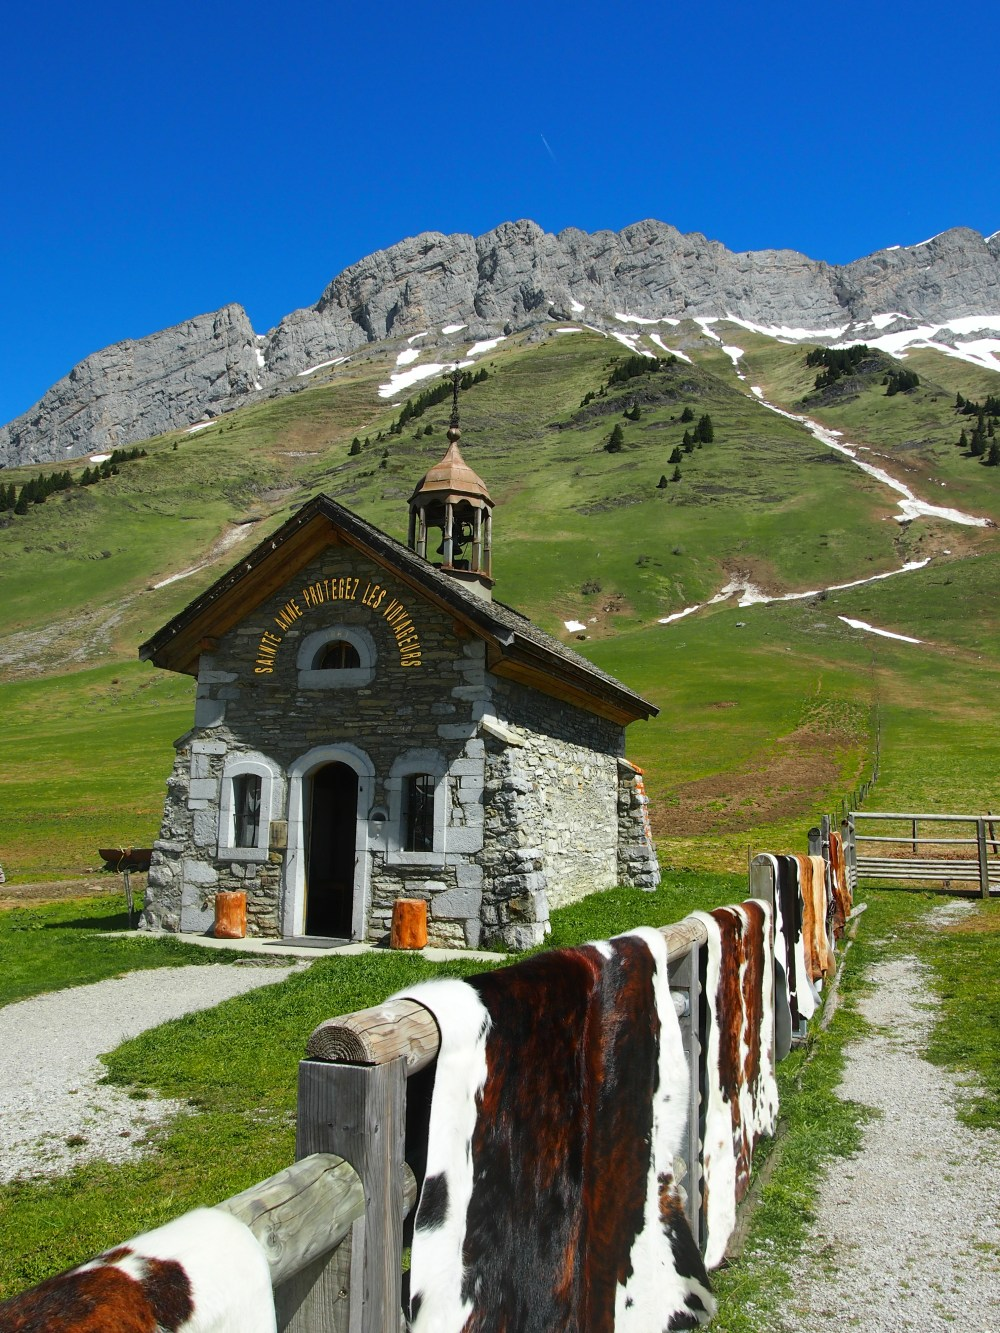 Chapel at the top of col d'aravis